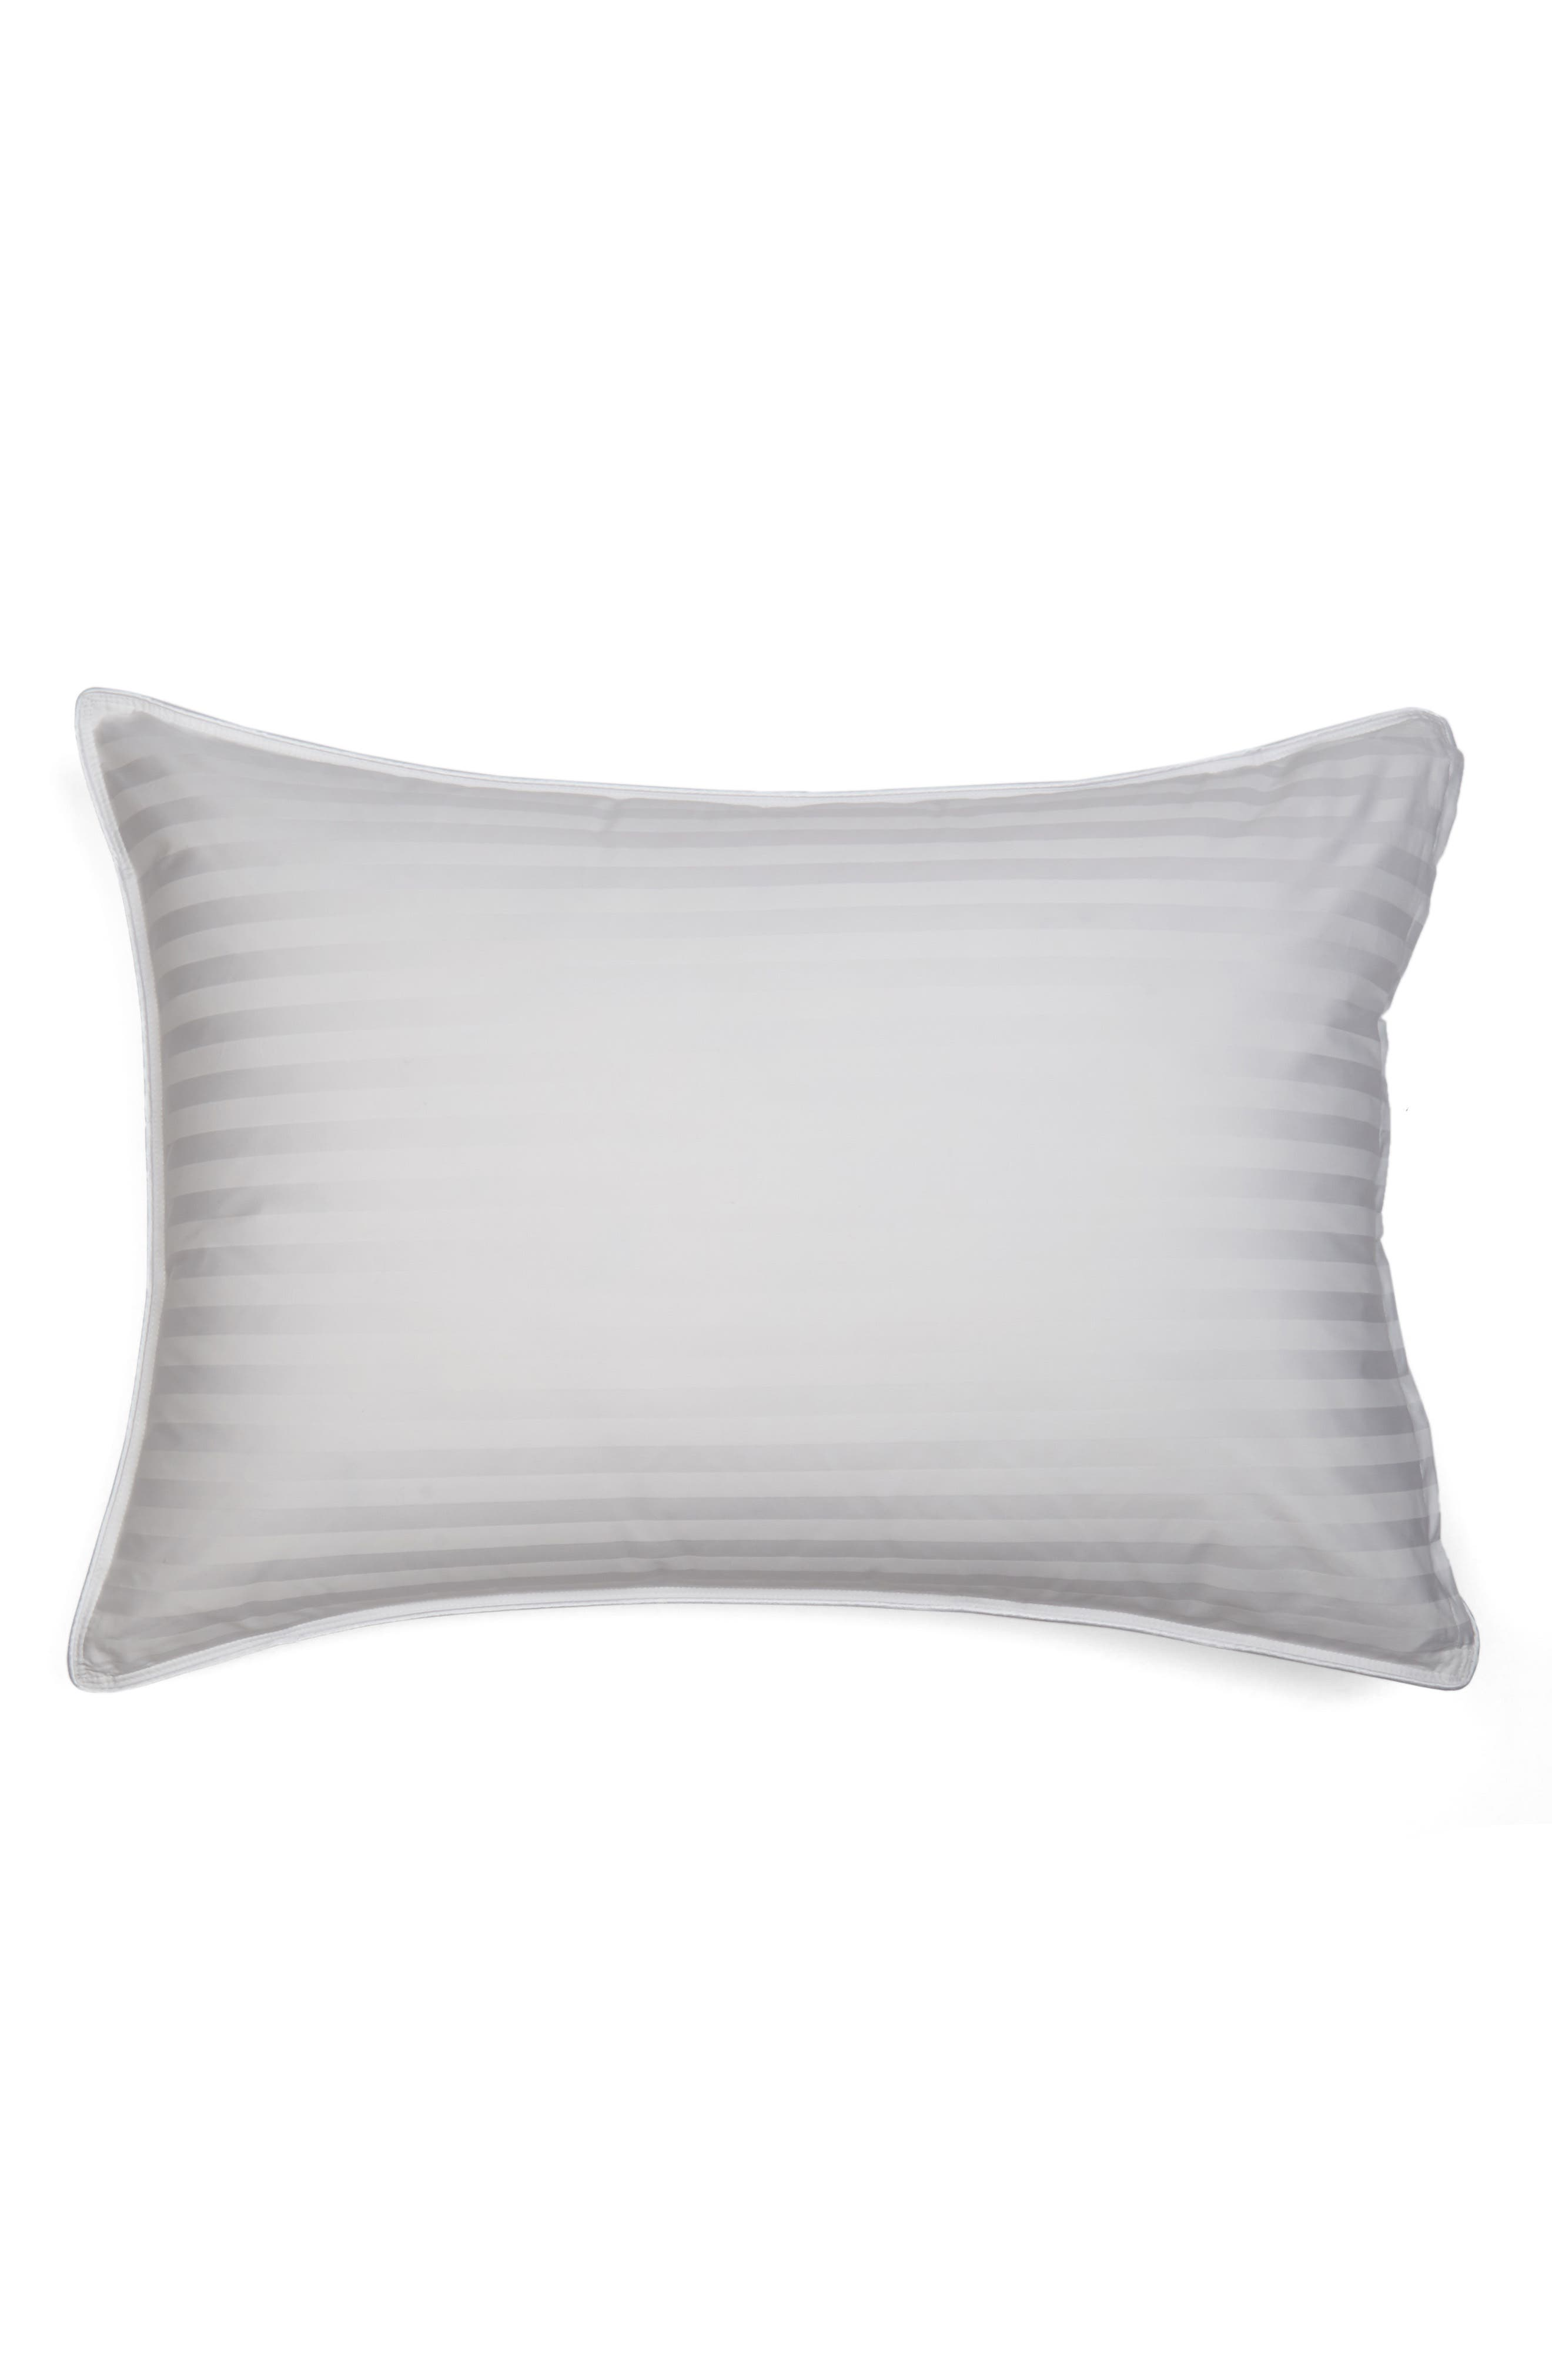 Main Image - Nordstrom at Home Feather & Down Chamber Pillow